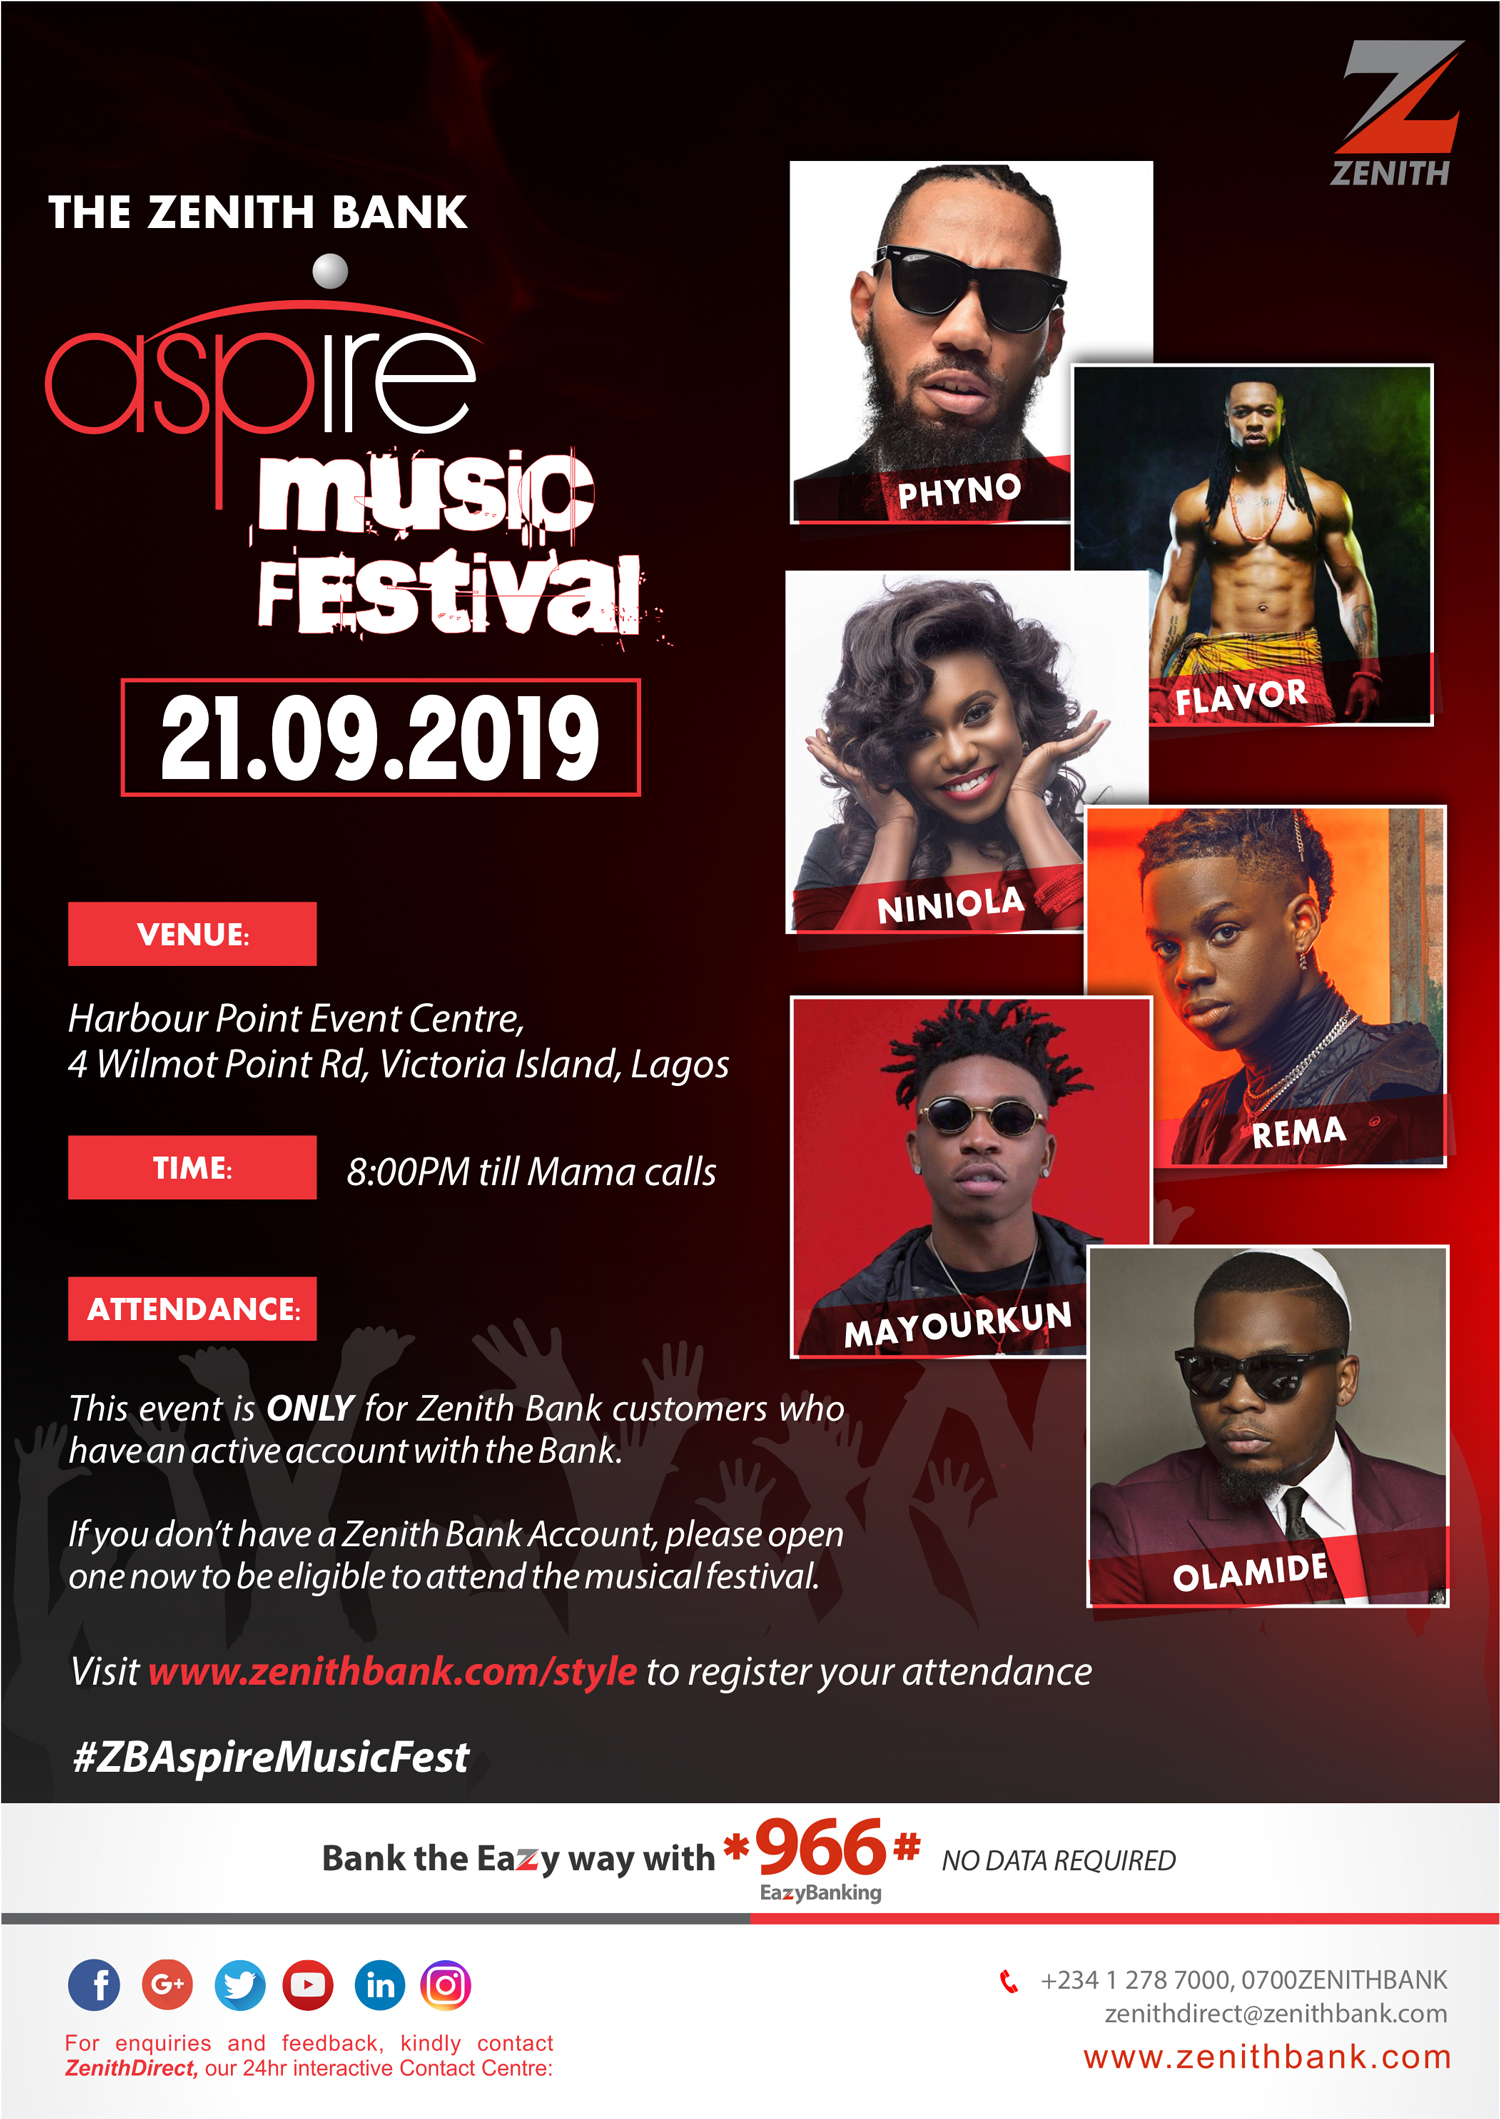 Phyno, Flavor, Niniola, Rema, Mayorkun & Olamide to lockdown Zenith Bank's Aspire Music Festival | September 21st